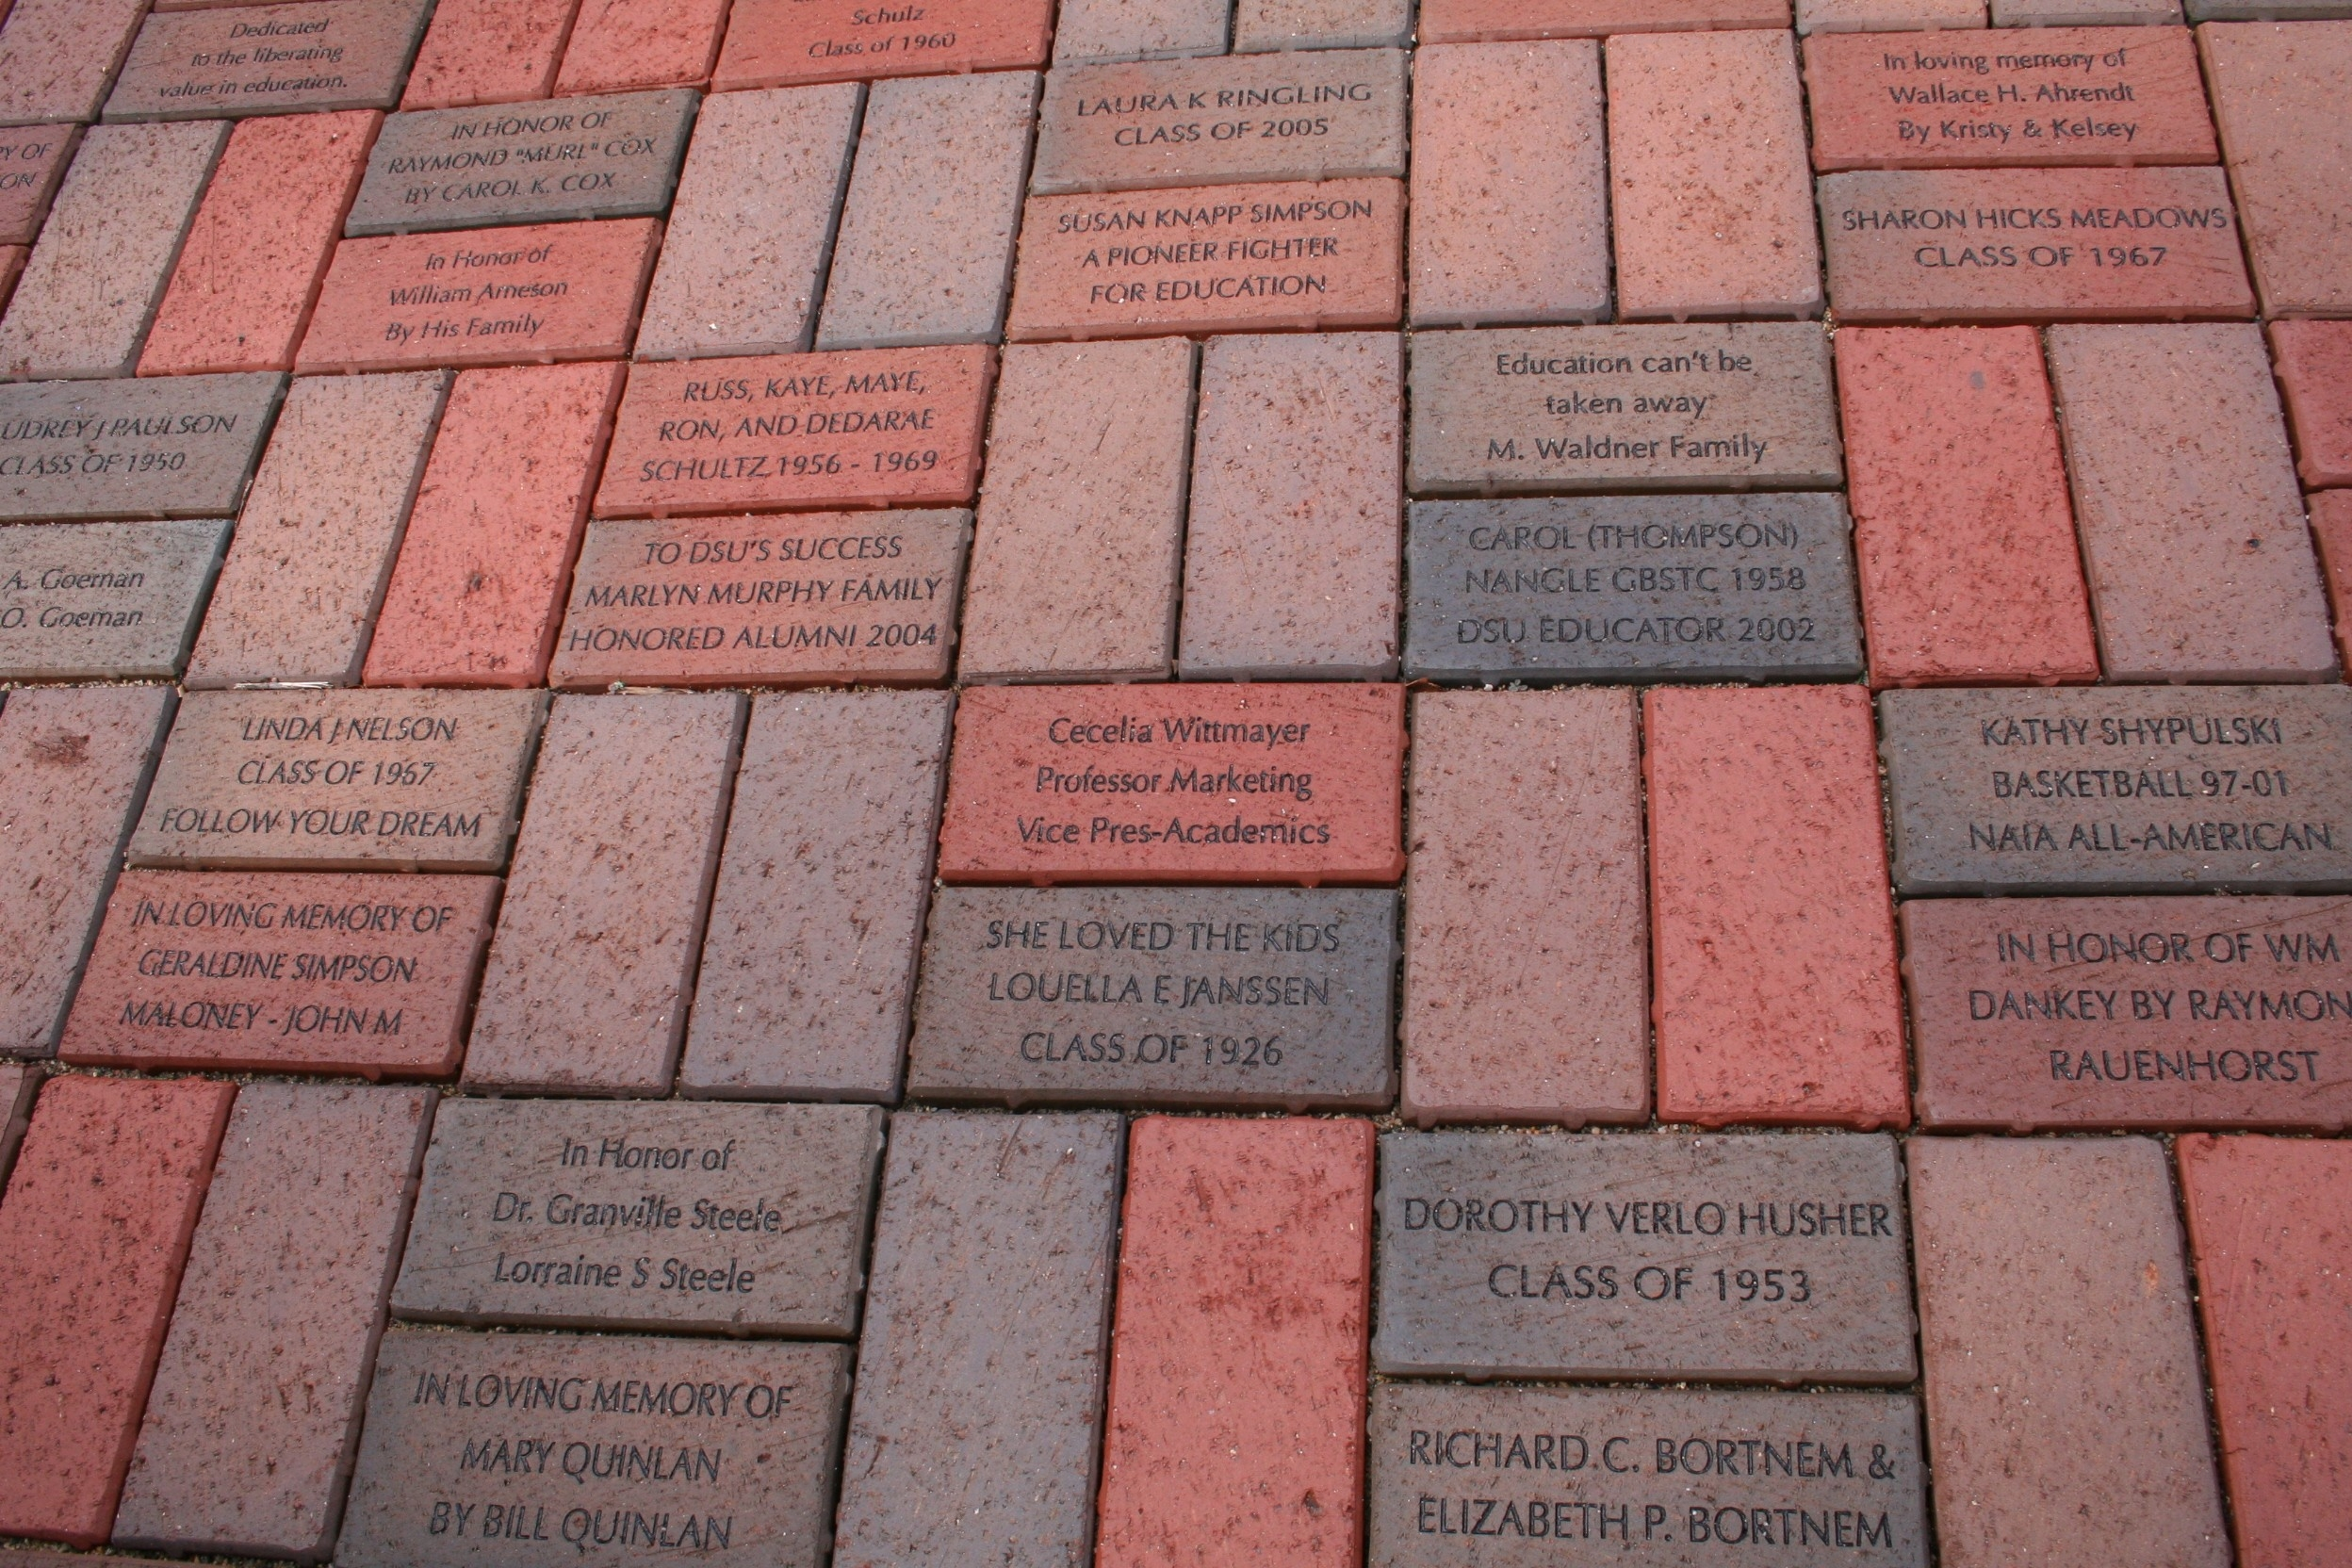 Brick Paver Installation Materials Needed To Install Engraved Brickspavers « Brick Markers